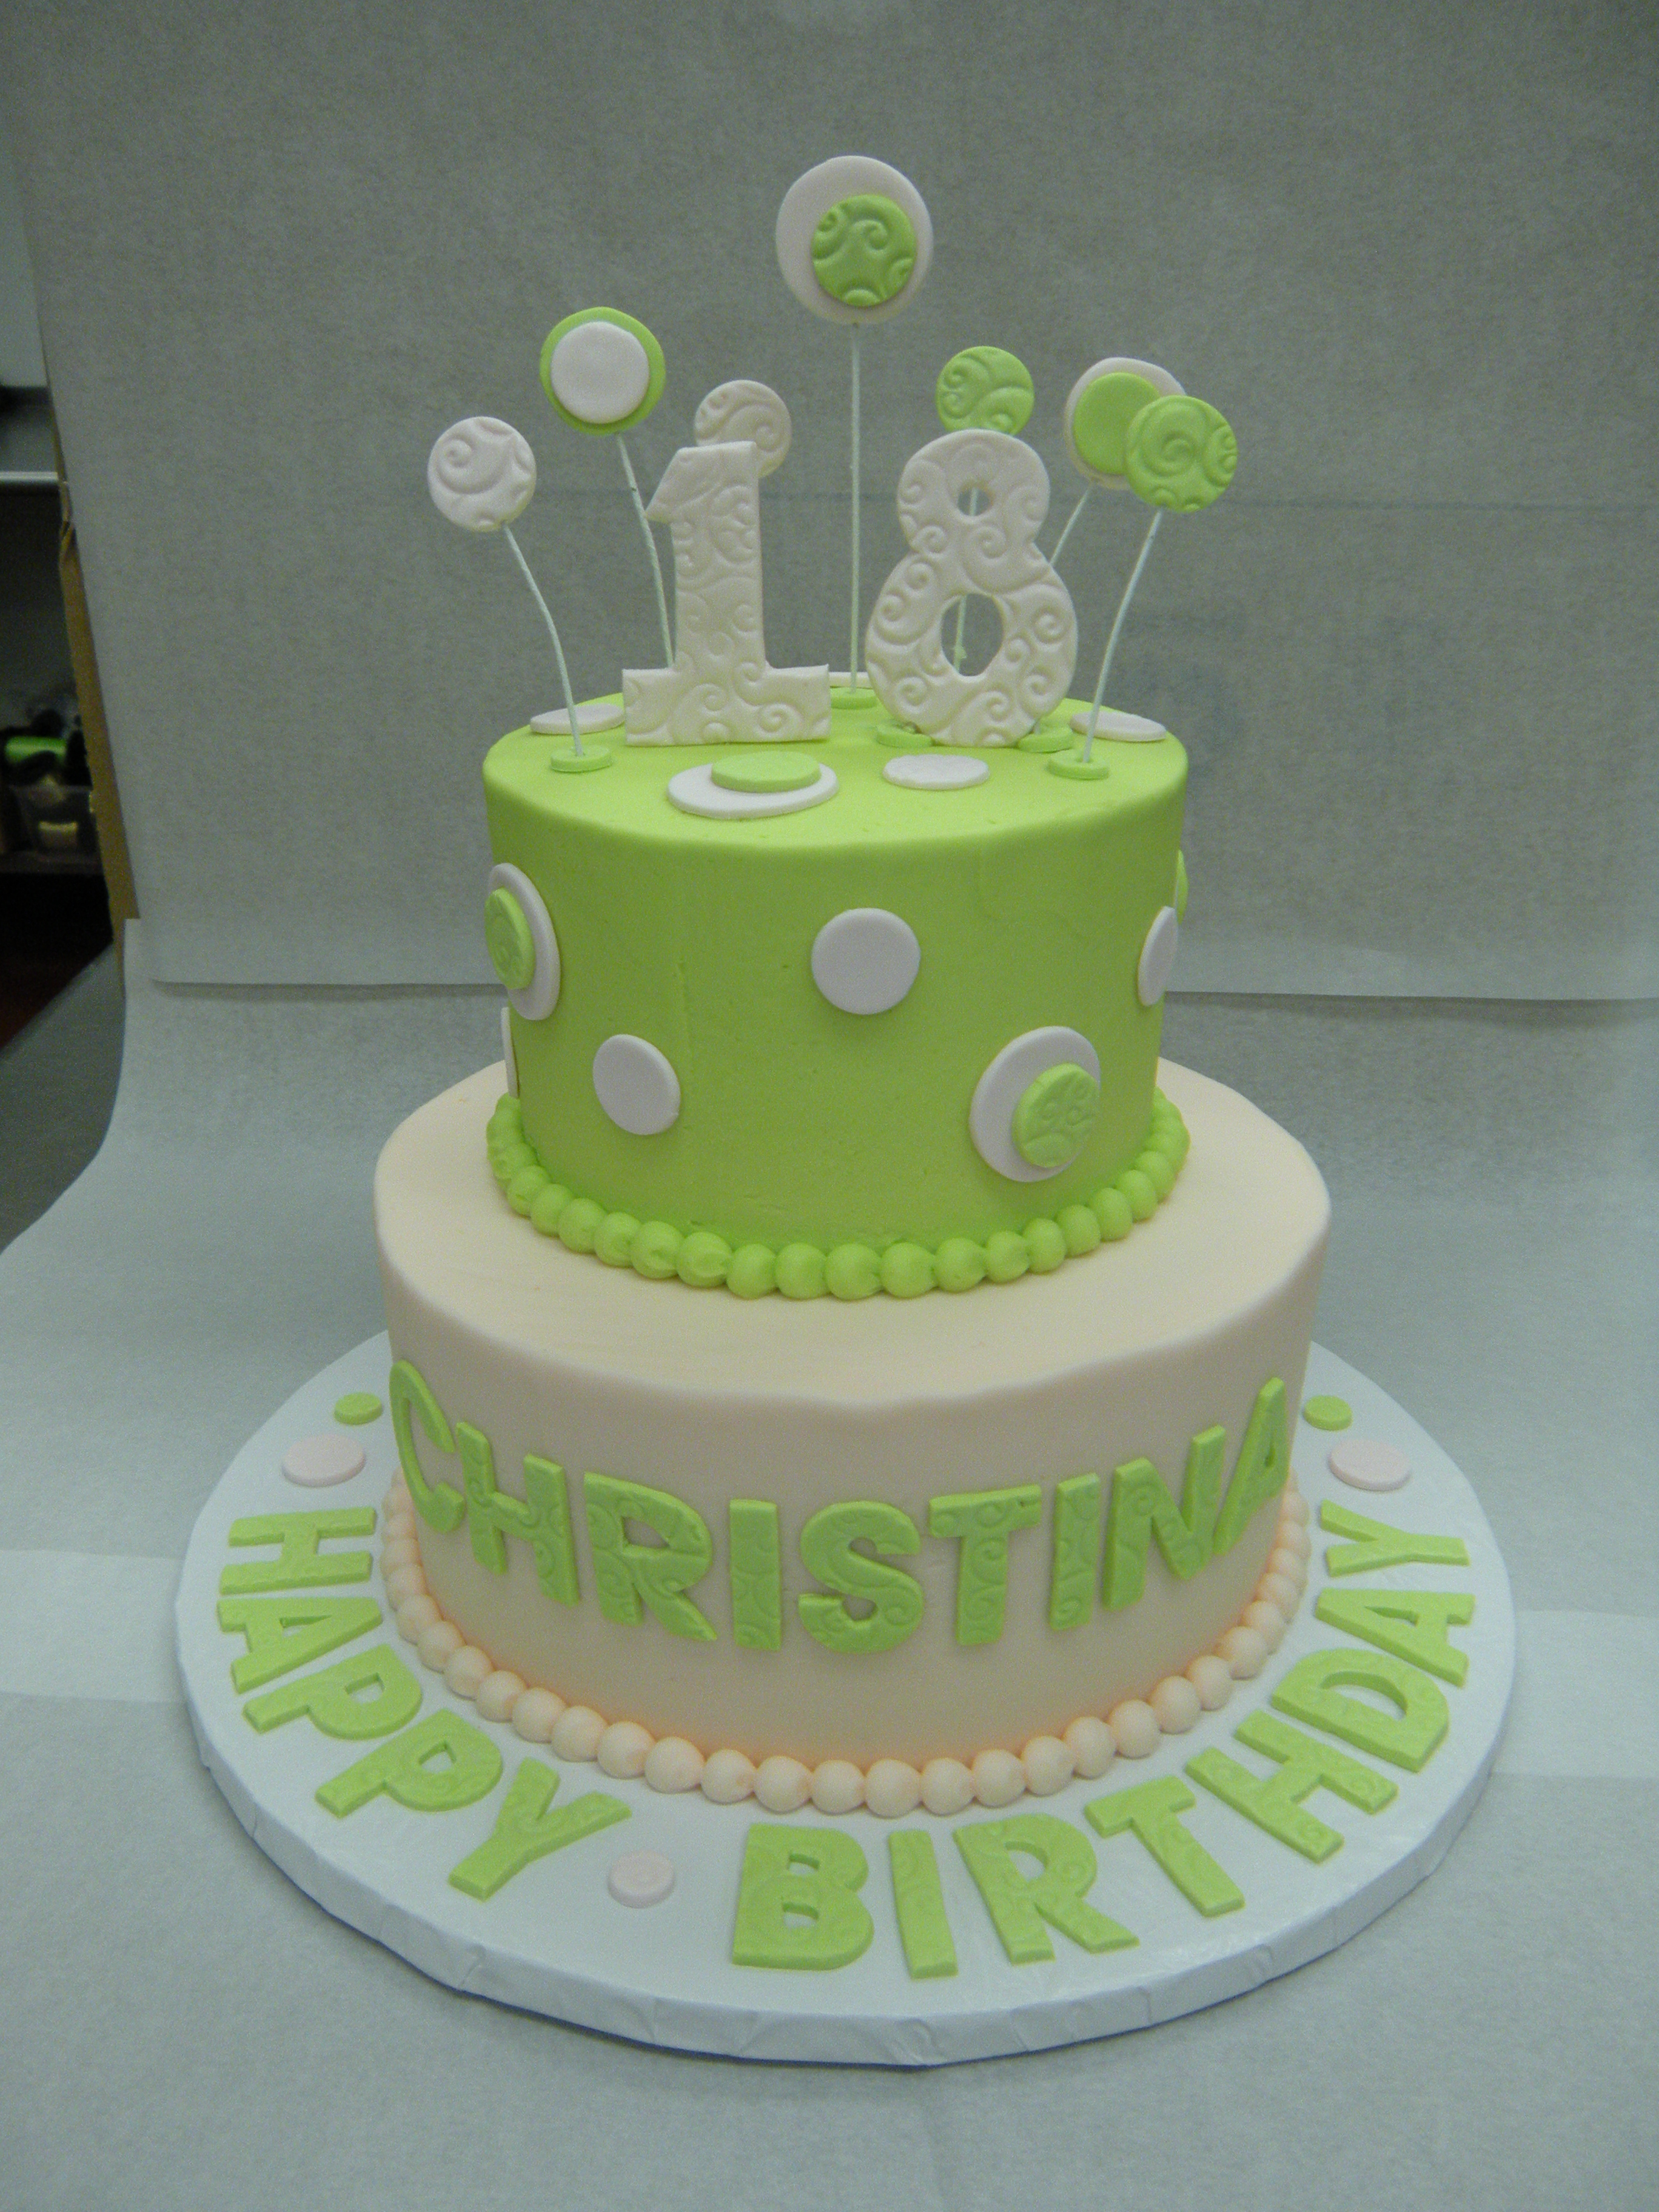 Stupendous 11 Pink And Green Birthday Cakes For Girls Photo Cute 1St Personalised Birthday Cards Epsylily Jamesorg